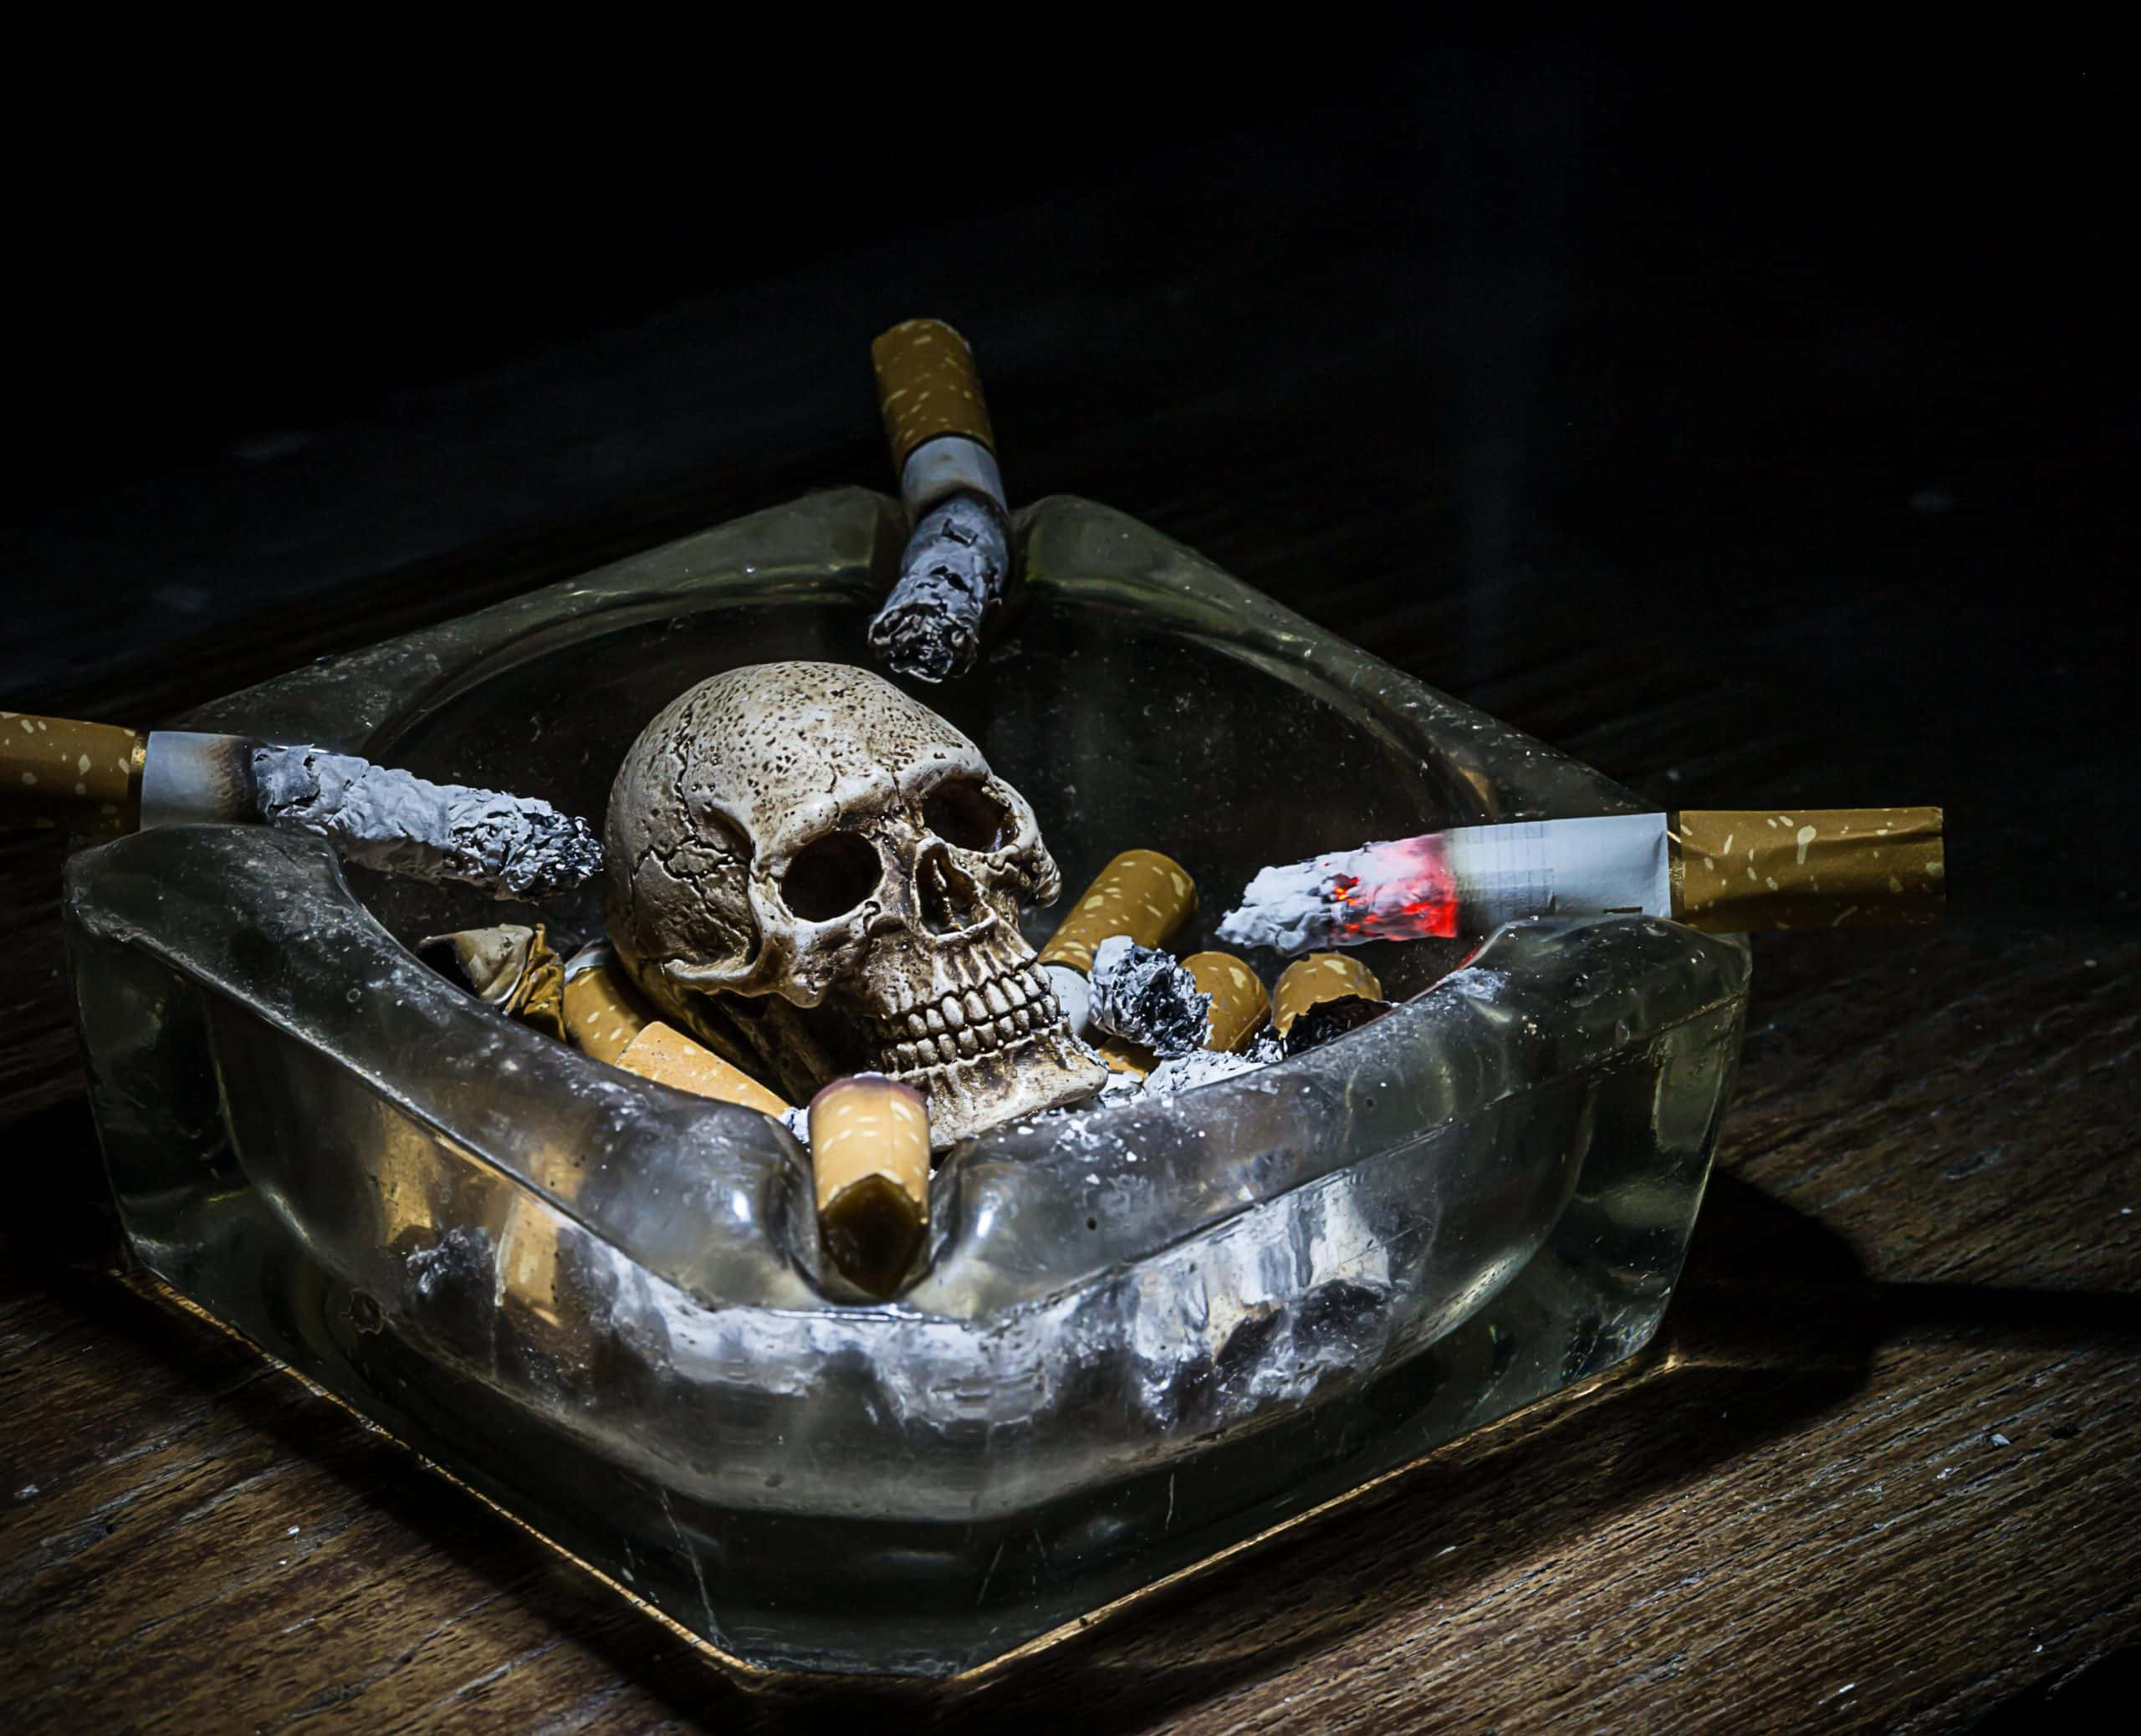 $37M Award Slams Philip Morris & Rjr at Trial Over Smoker's Cancer, COPD Death